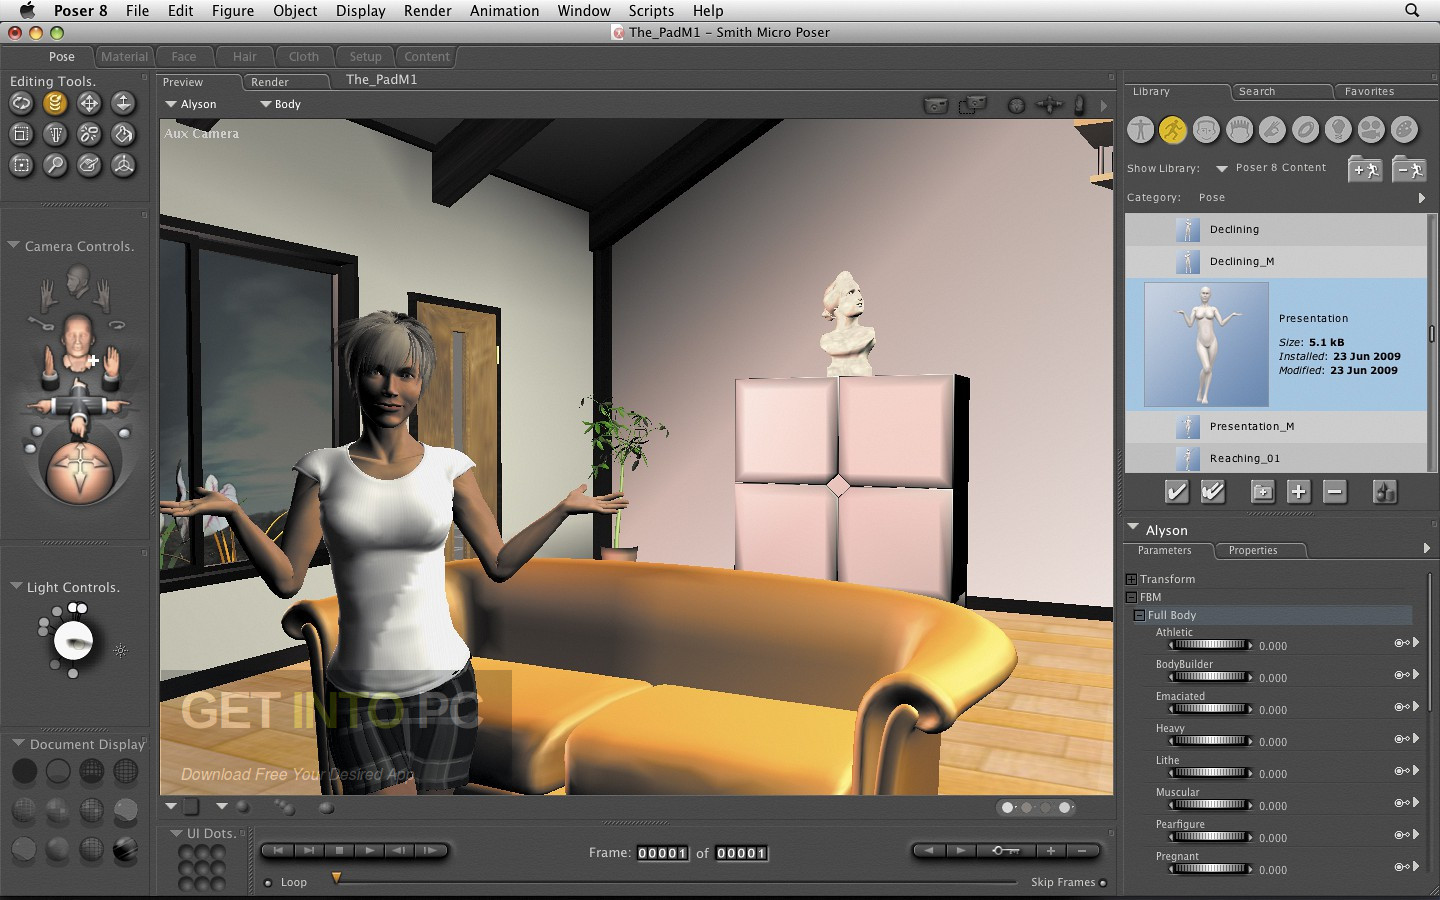 Smith Micro Poser Pro 11 Direct Link Download